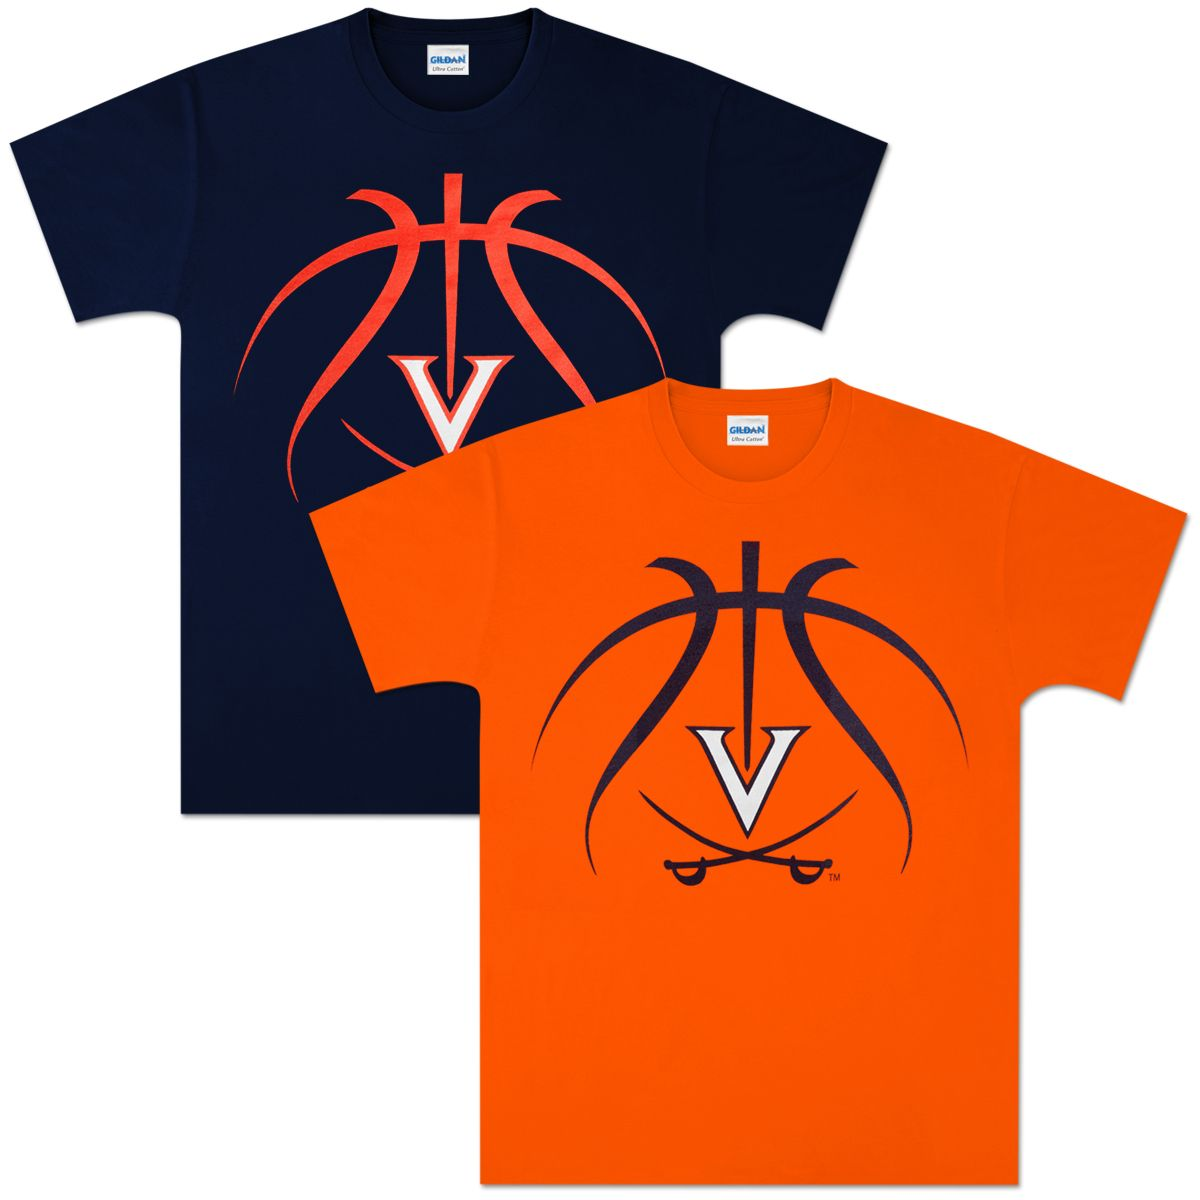 basketball t shirt designs cool - Basketball T Shirt Design Ideas